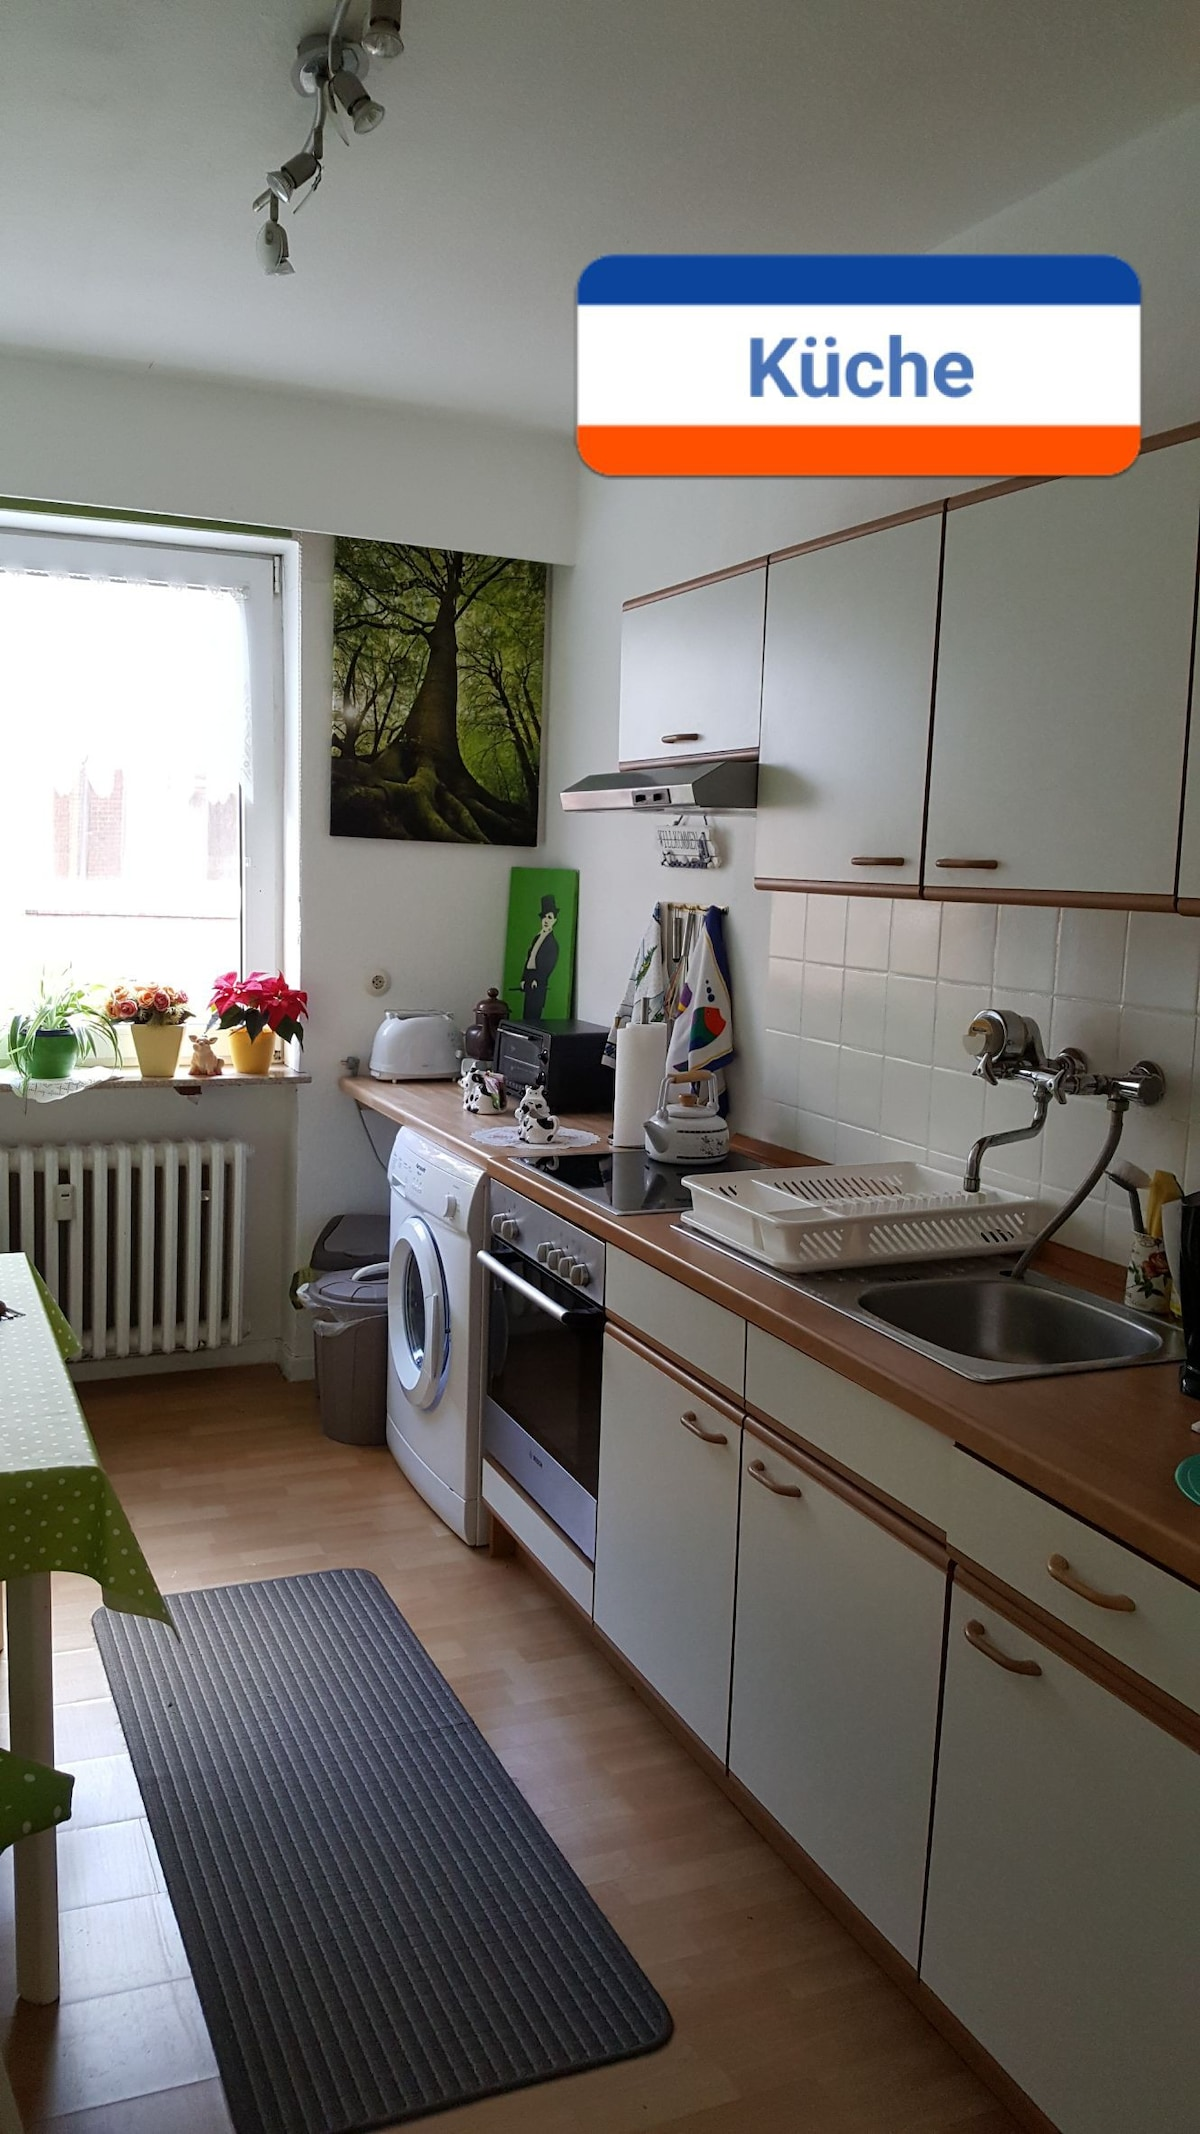 Emden 2018 (with Photos): Top 20 Places To Stay In Emden   Vacation  Rentals, Vacation Homes   Airbnb Emden, Lower Saxony, Germany